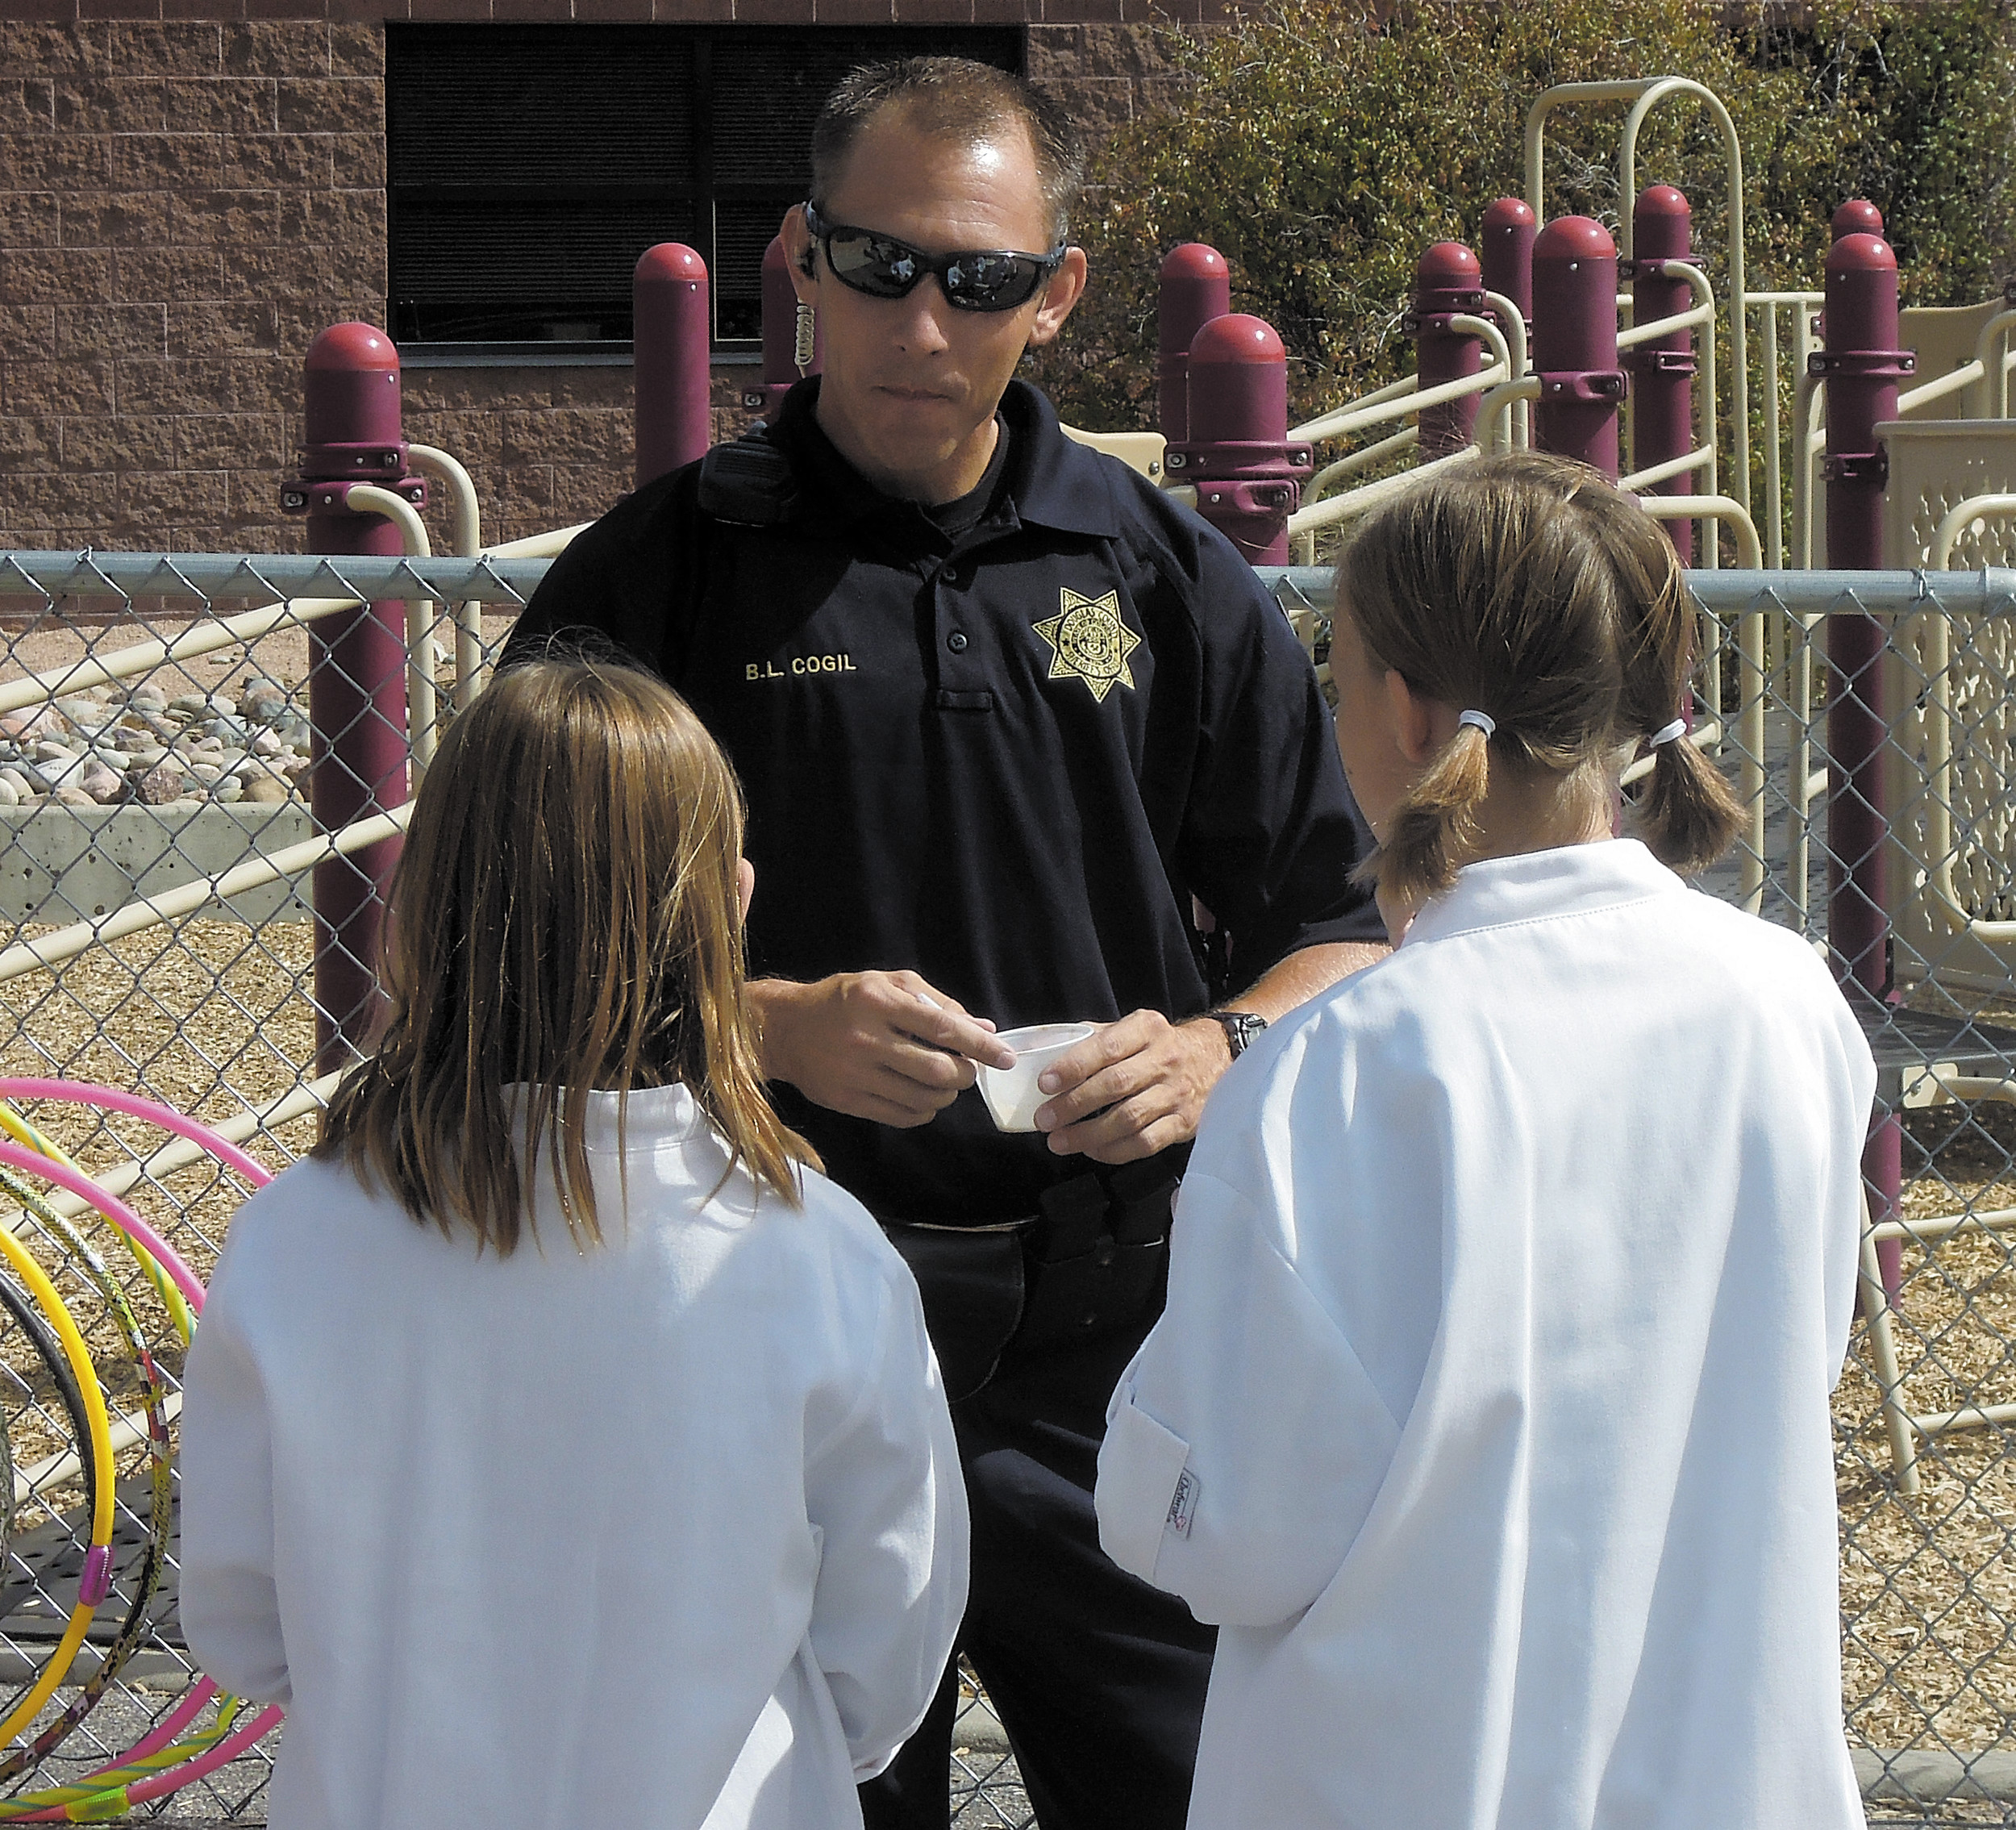 Douglas County Sheriff's Deputy Brian Cogil talk with students at Cougar Run Elementary during a fall 2013 event. Cogil is among the many officers who frequently visit schools as part of DCSD's marshal program. Photo by Jane Reuter